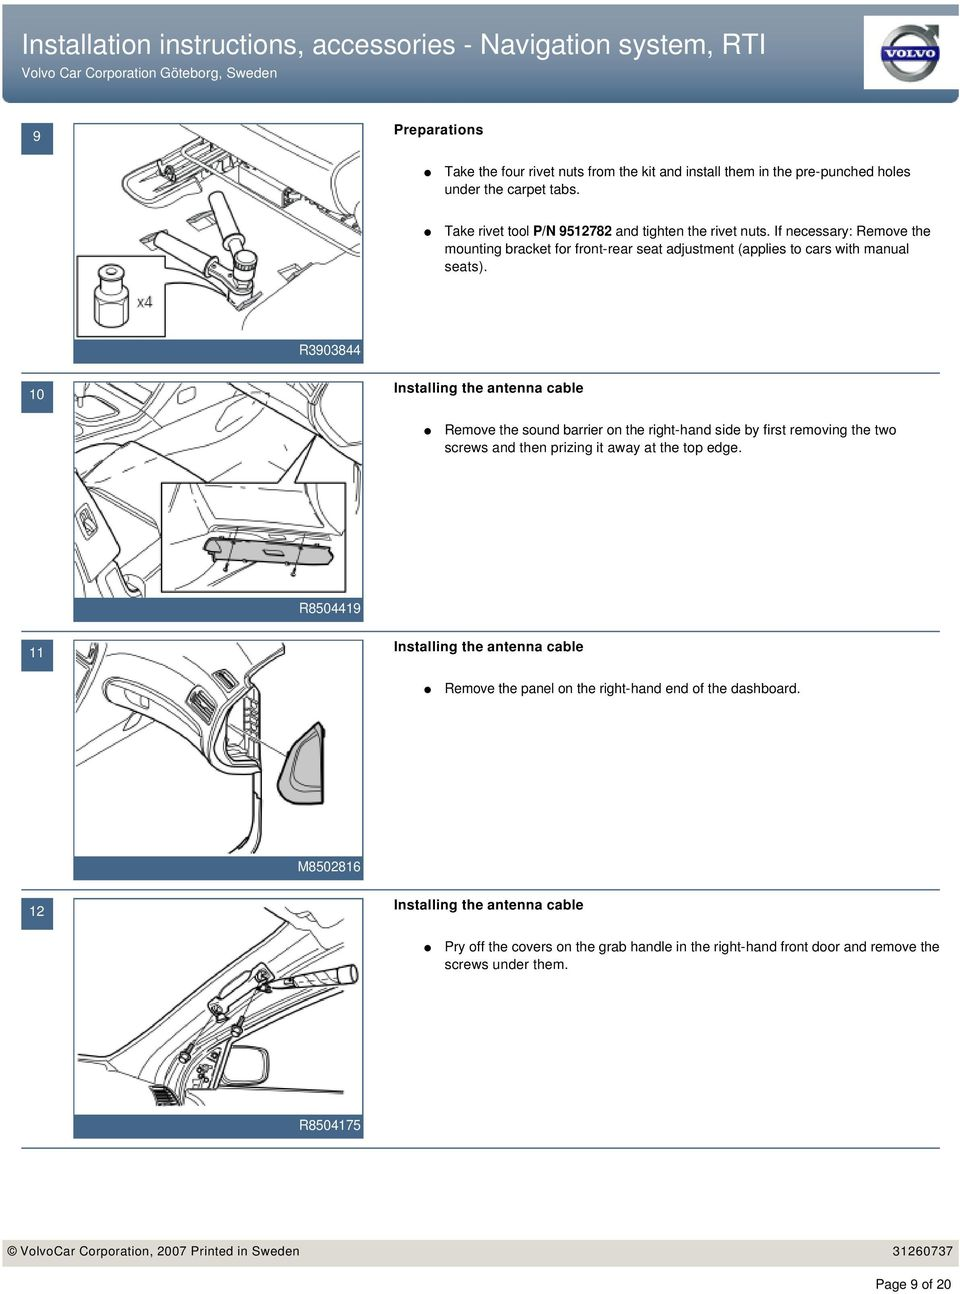 If necessary: Remove the mounting bracket for front-rear seat adjustment (applies to cars with manual seats).